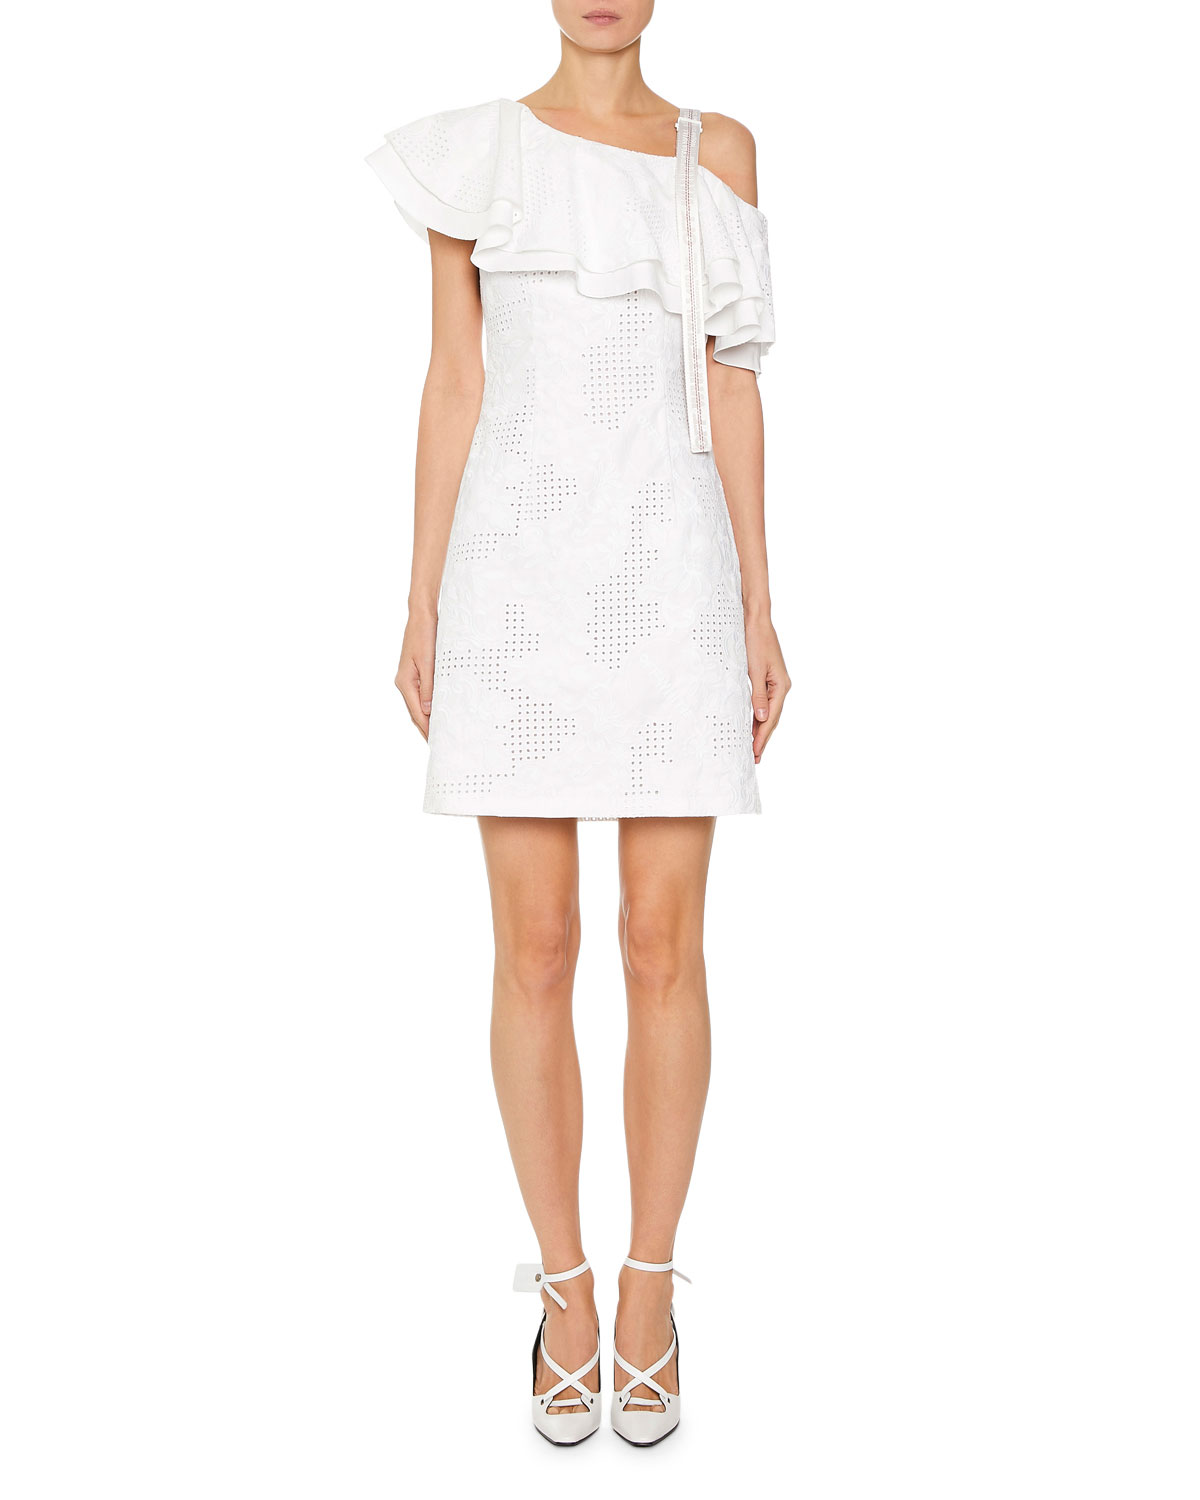 cdd34a7b0ff1 Off-White Ruffled Sangallo Lace One-Shoulder Dress